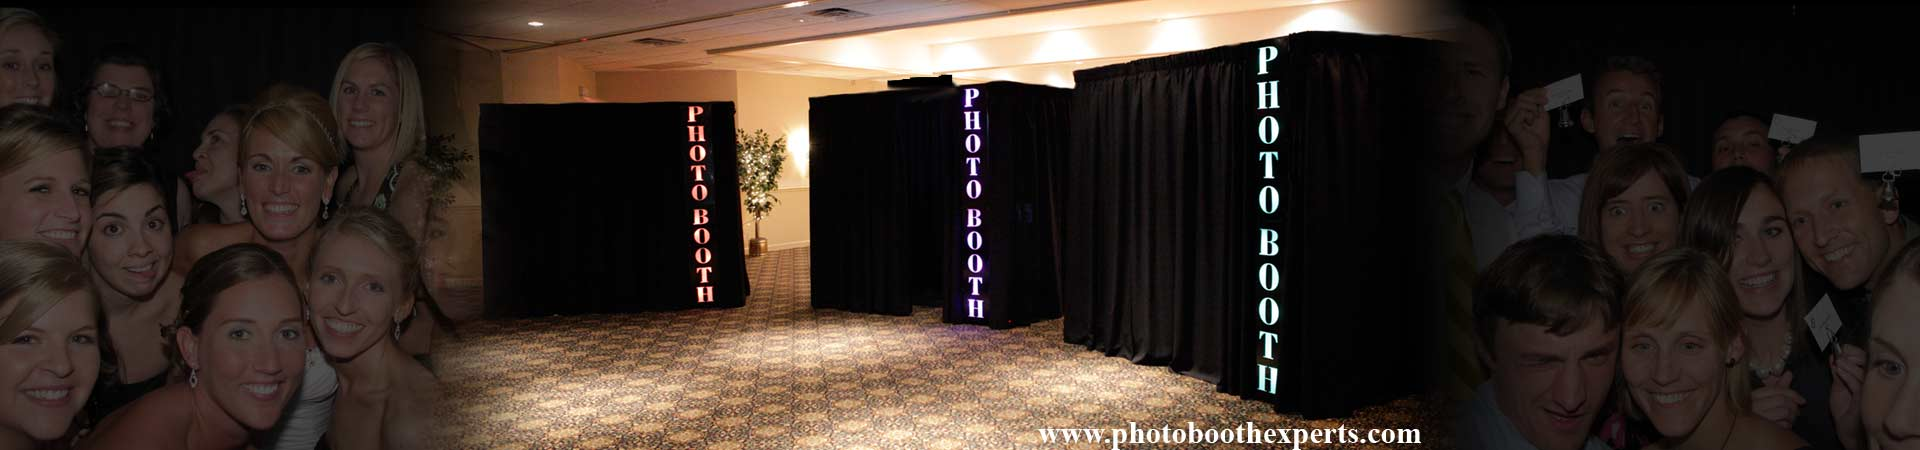 Multiple Photo Booths Available For Rent